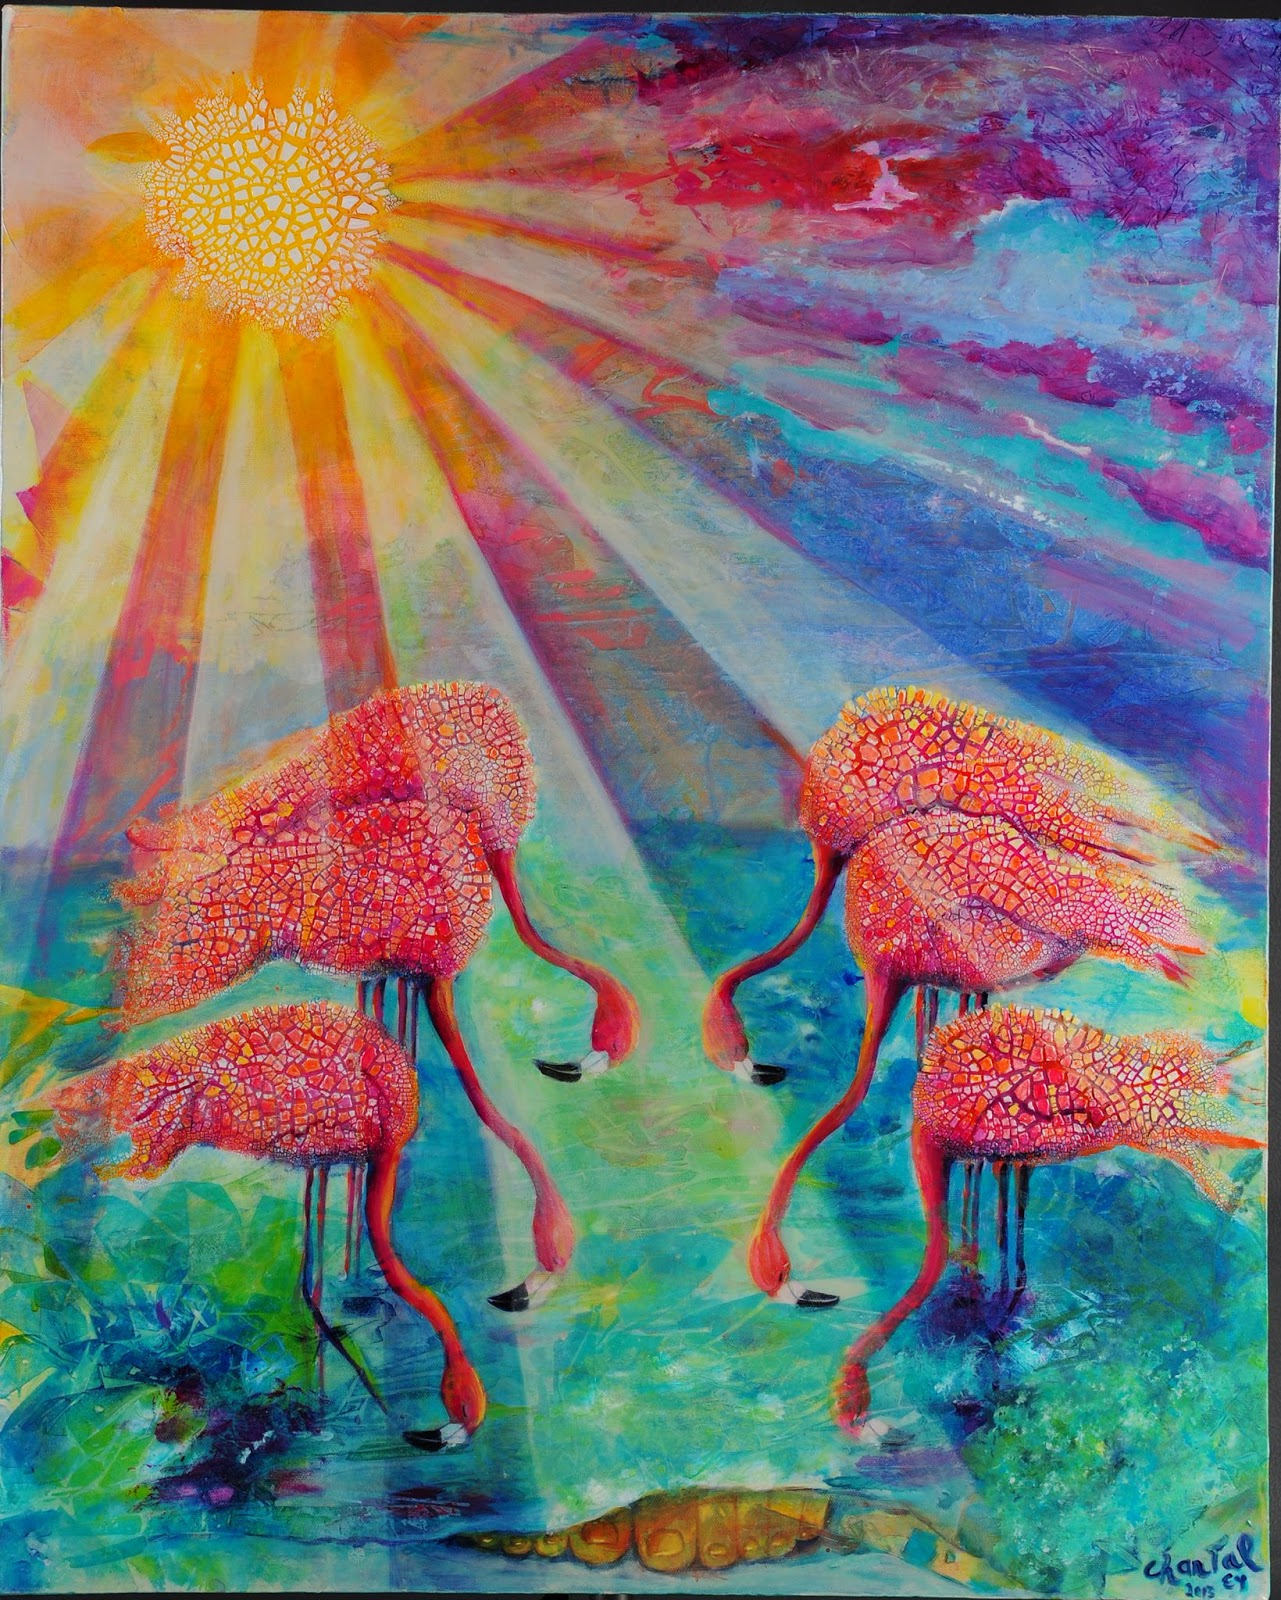 image   Omemee Baptist Church -World Day of Prayer Image - six flamingos with heads bowed